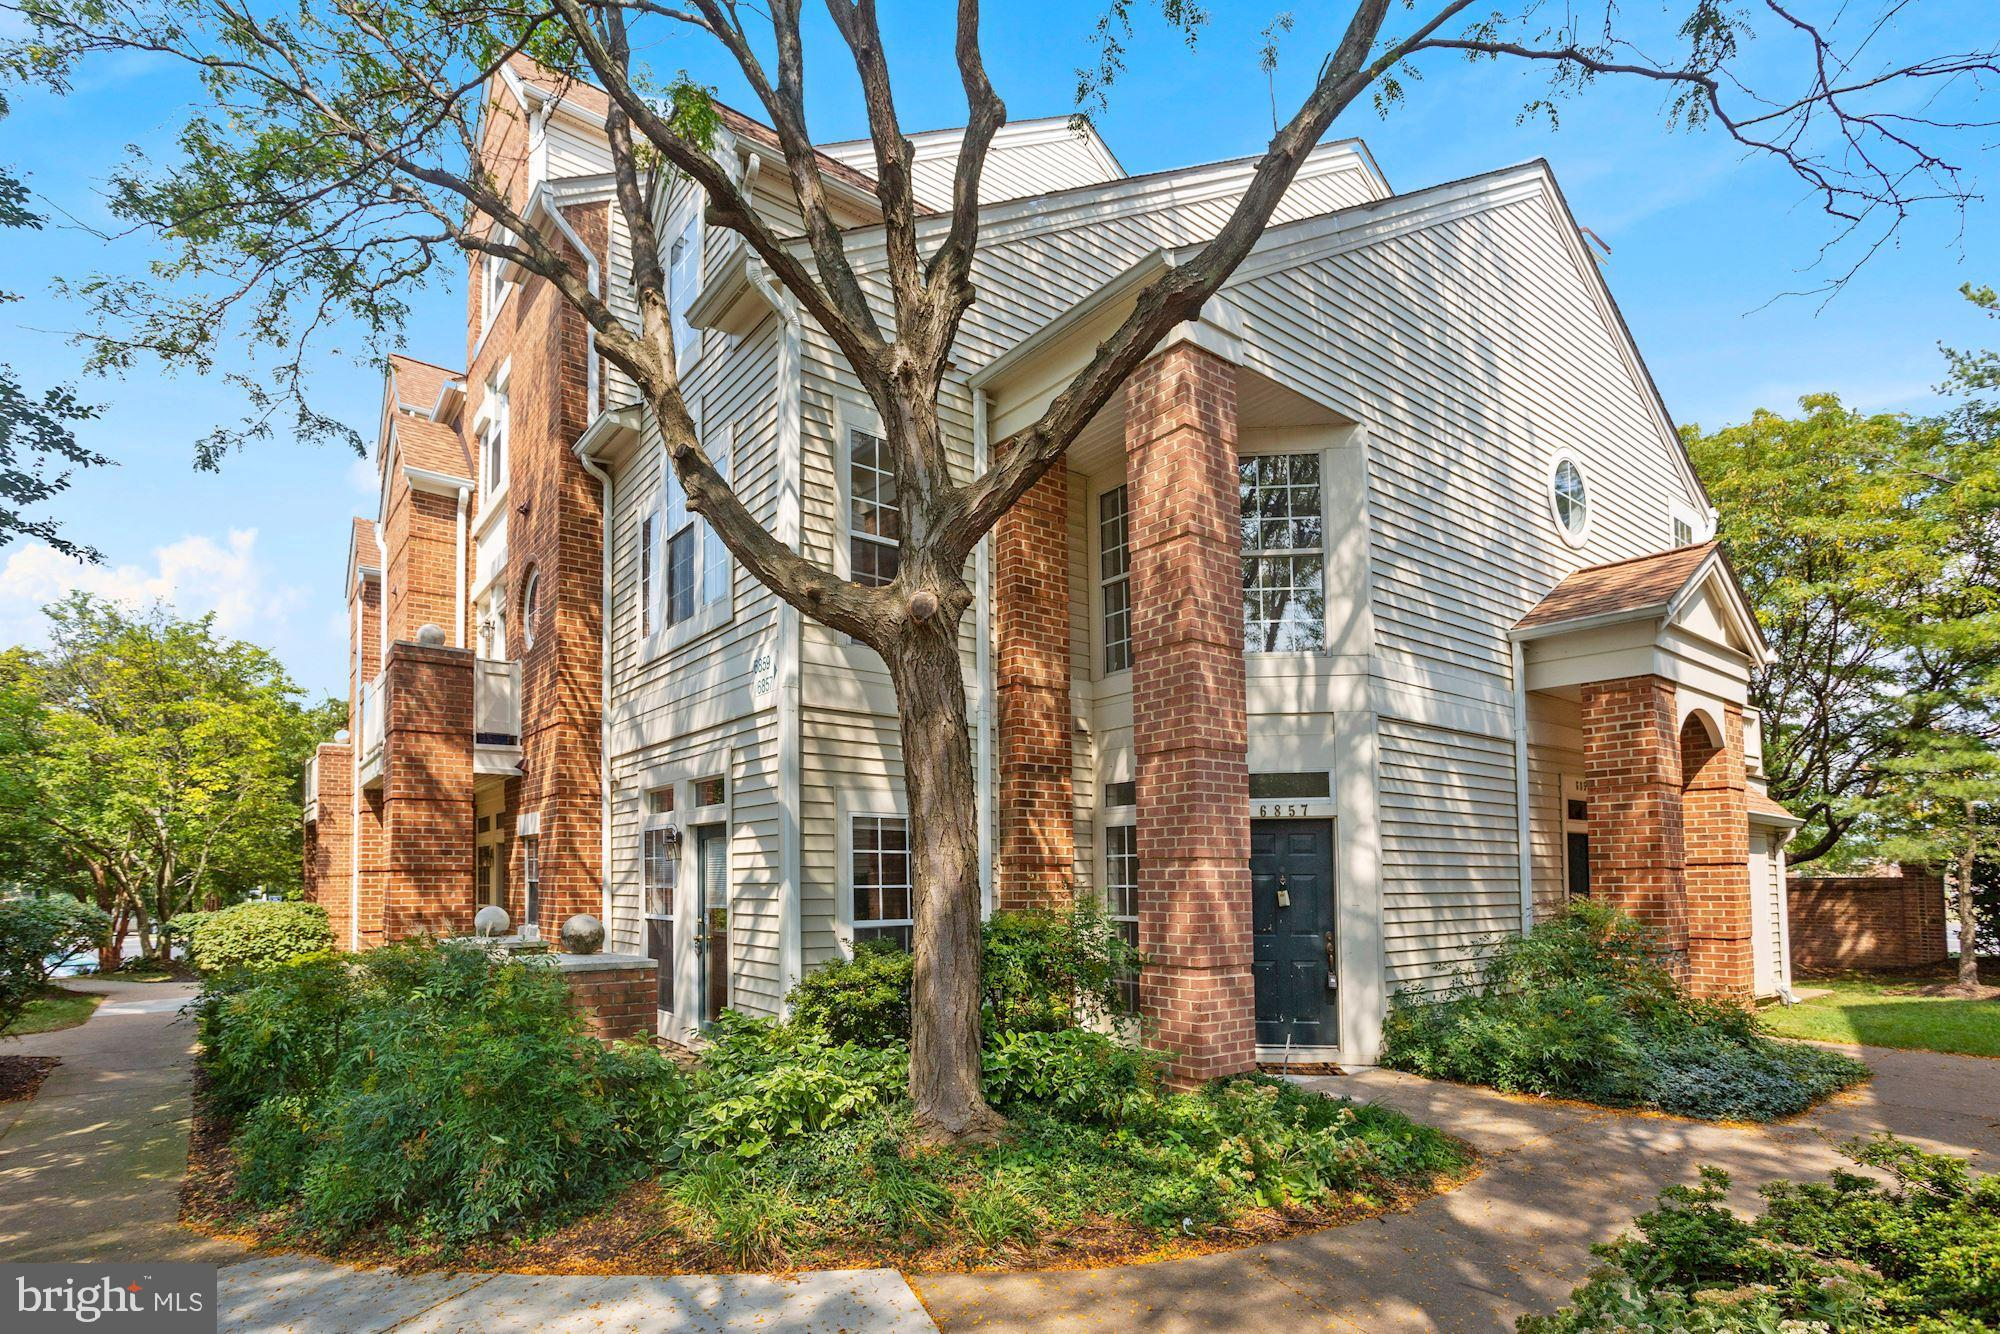 Rarely available 2-bed 2-bath multi-level condo in sought after Eton Square in the Heart of Kingstow